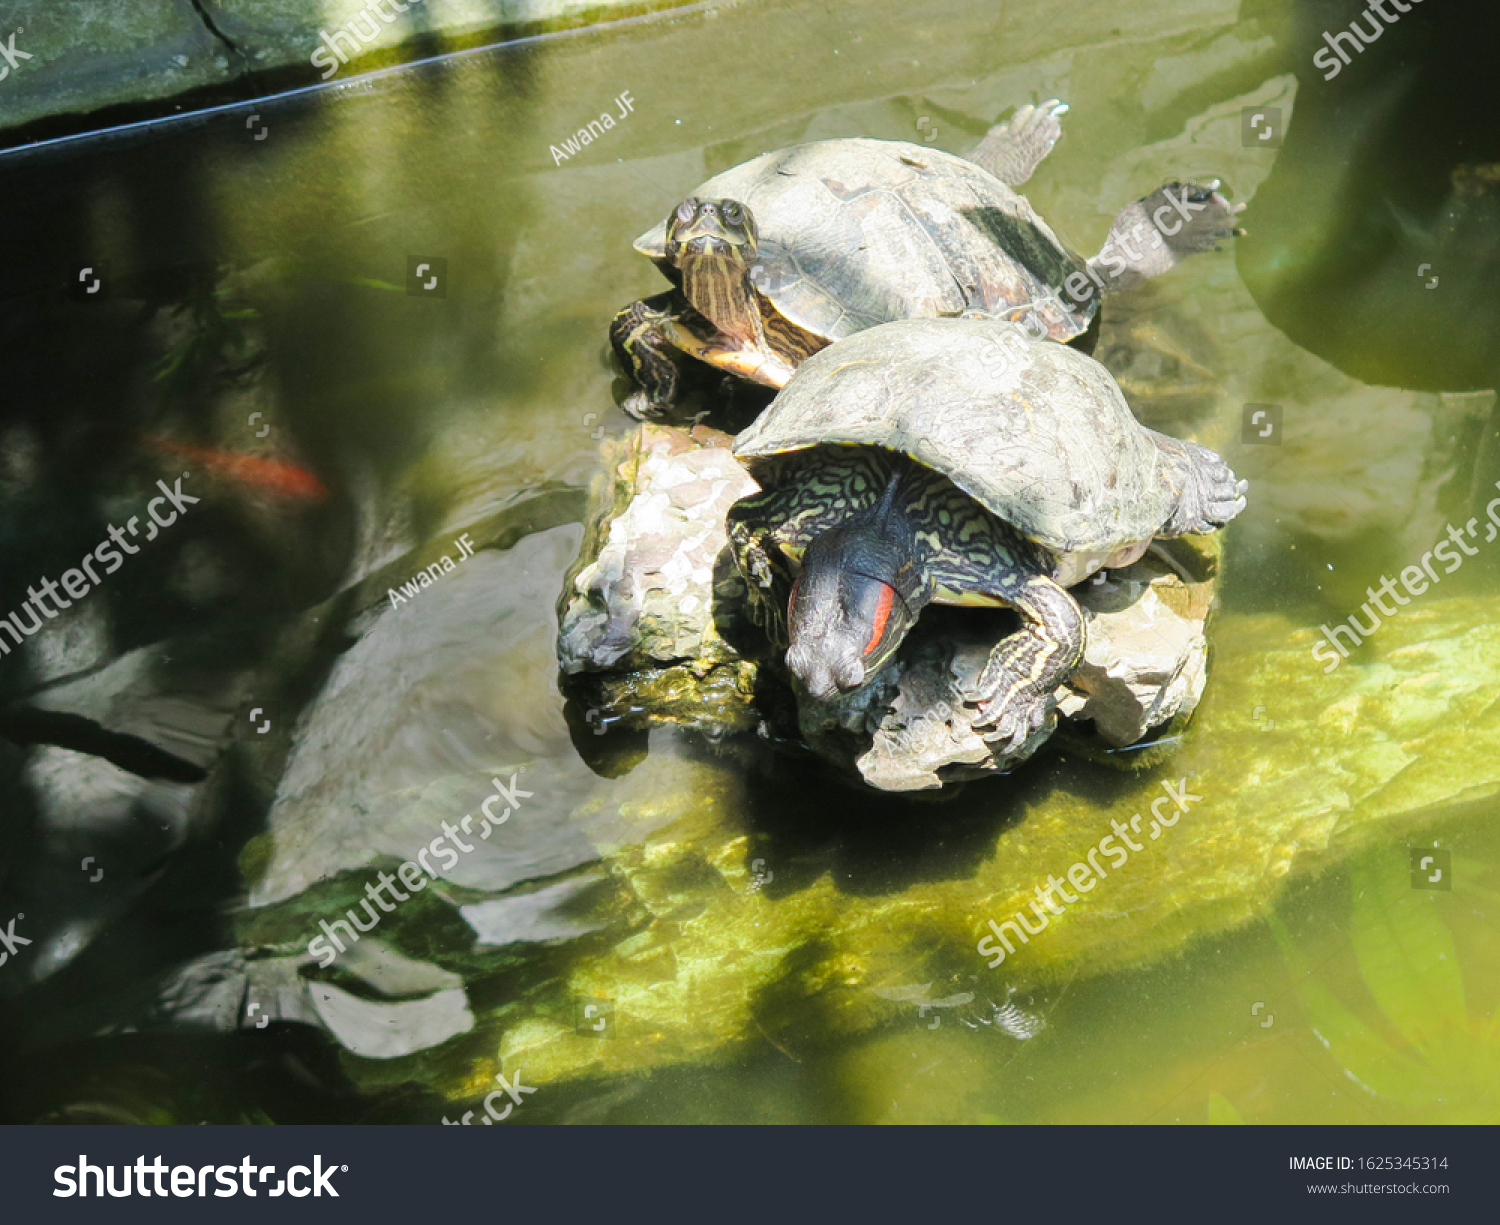 stock-photo-two-turtles-standing-on-a-st